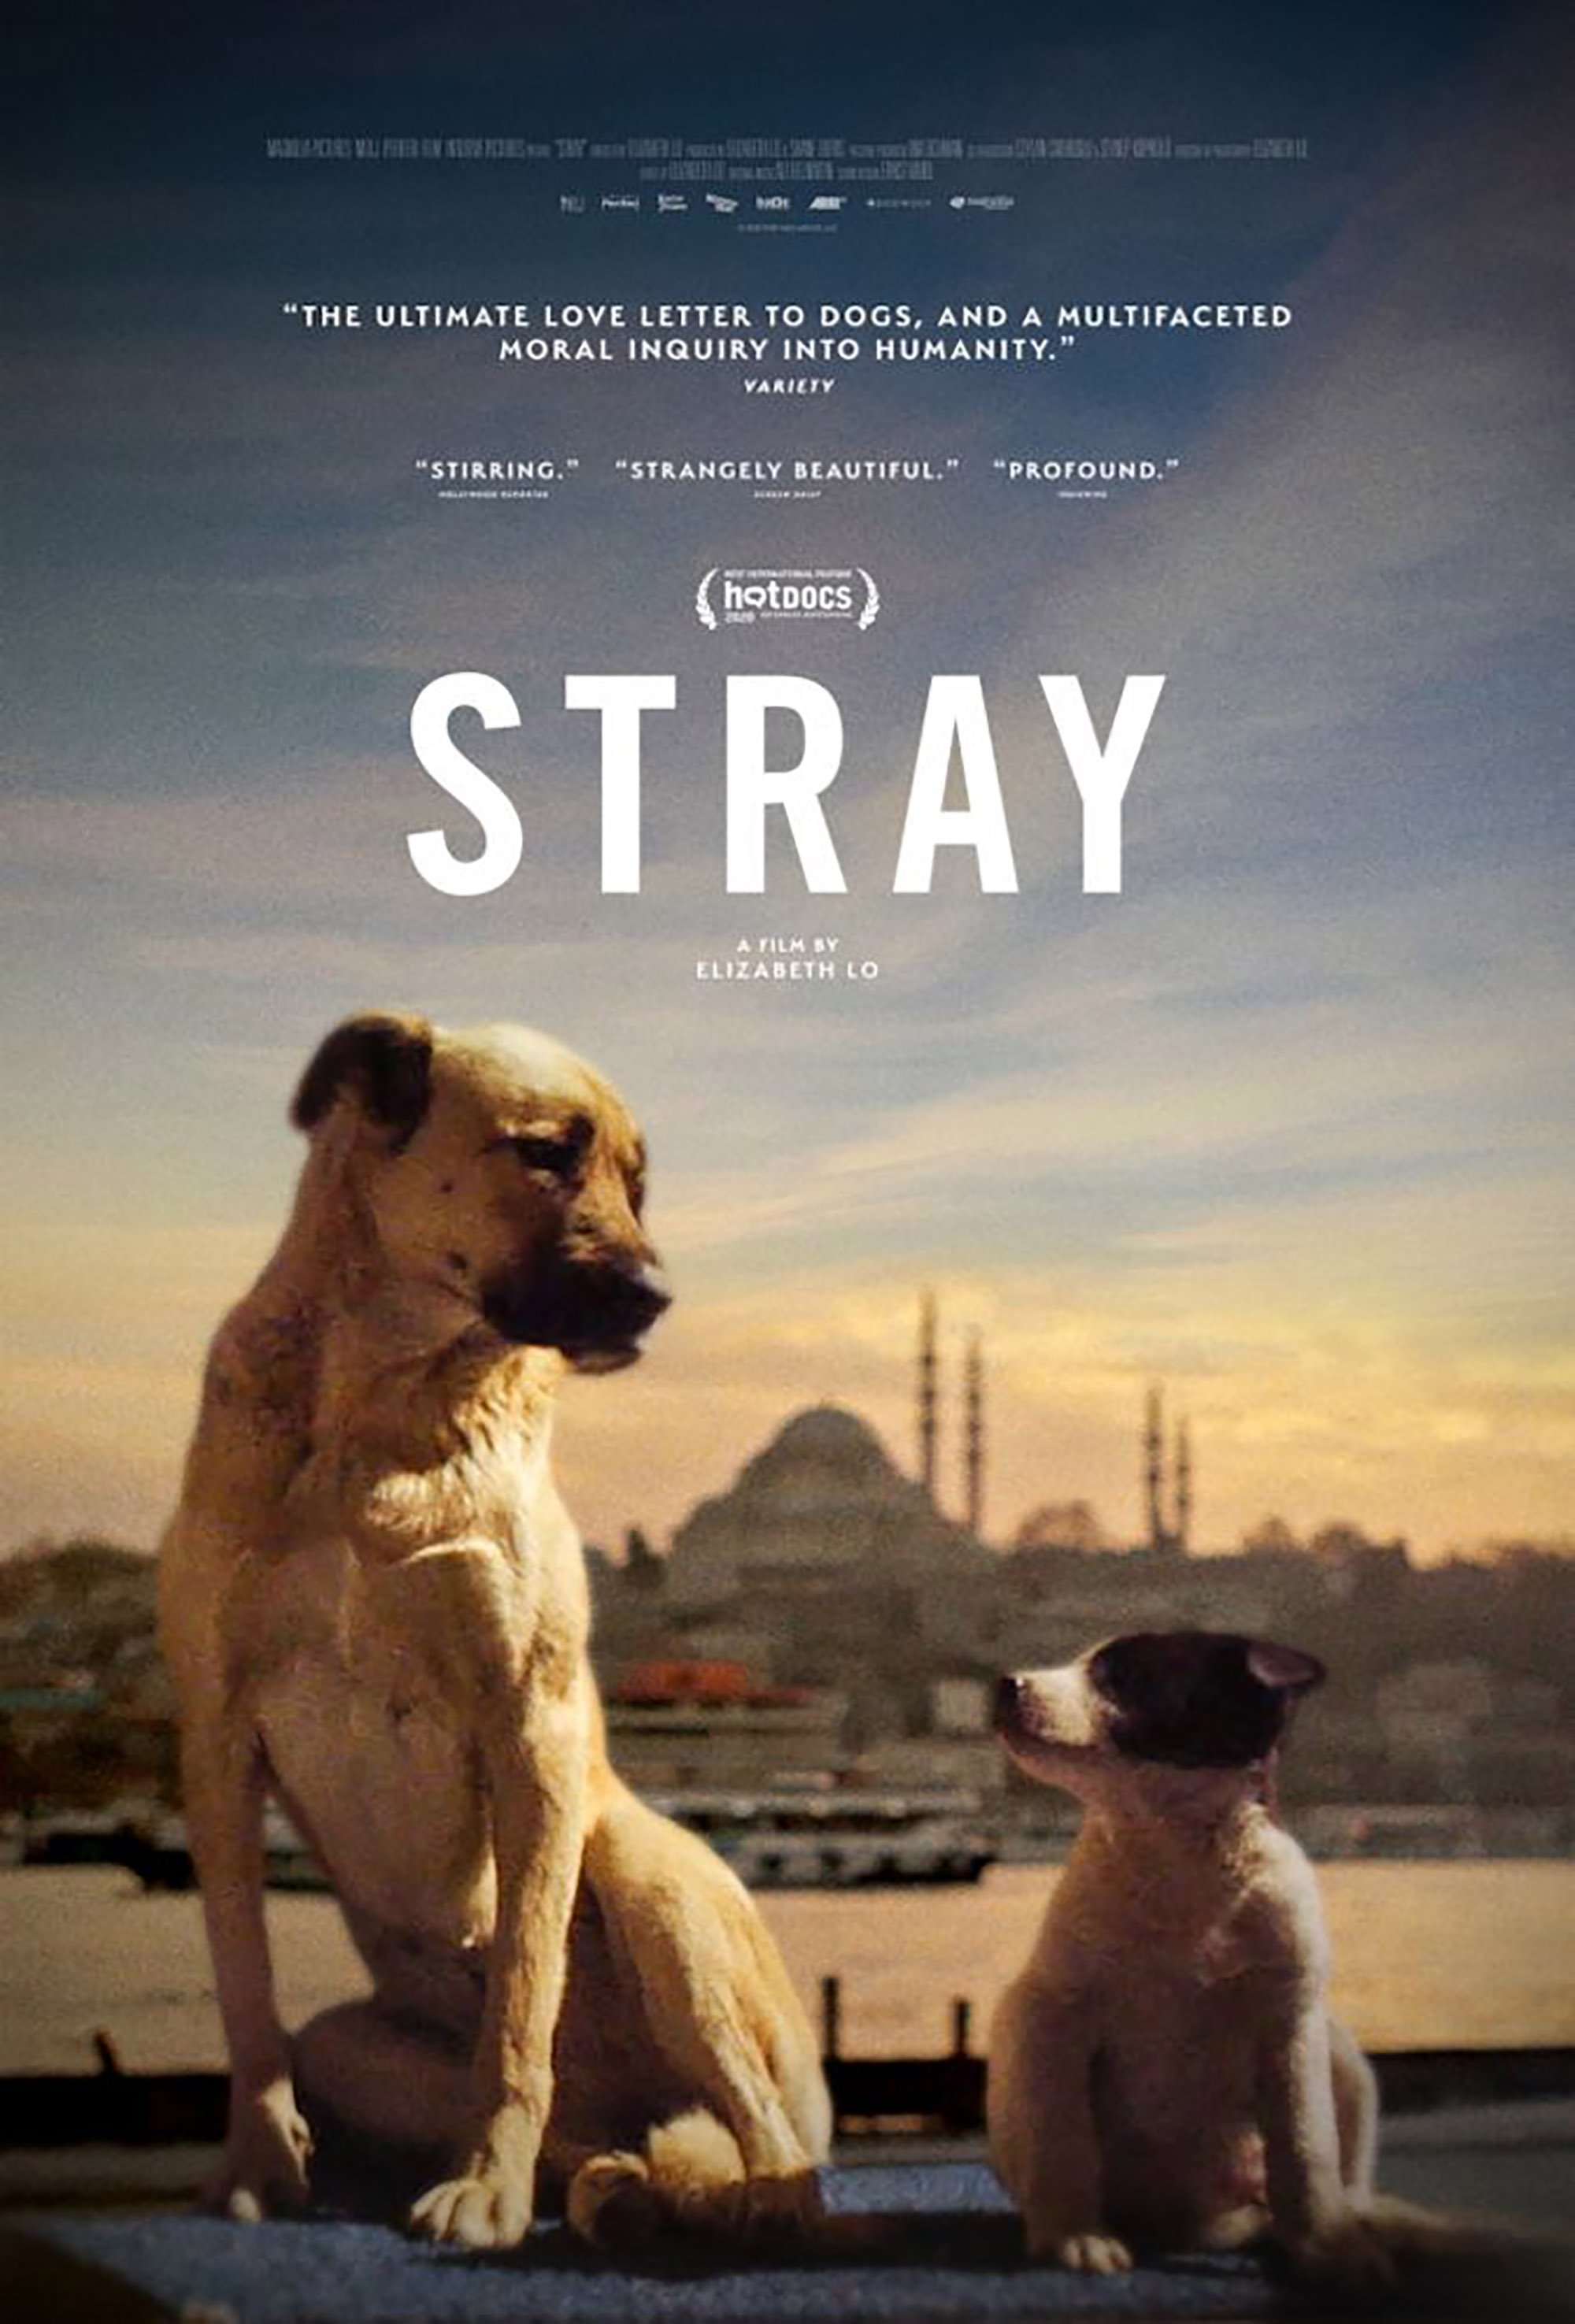 A poster for 'Stray,' directed by Elizabeth Lo.